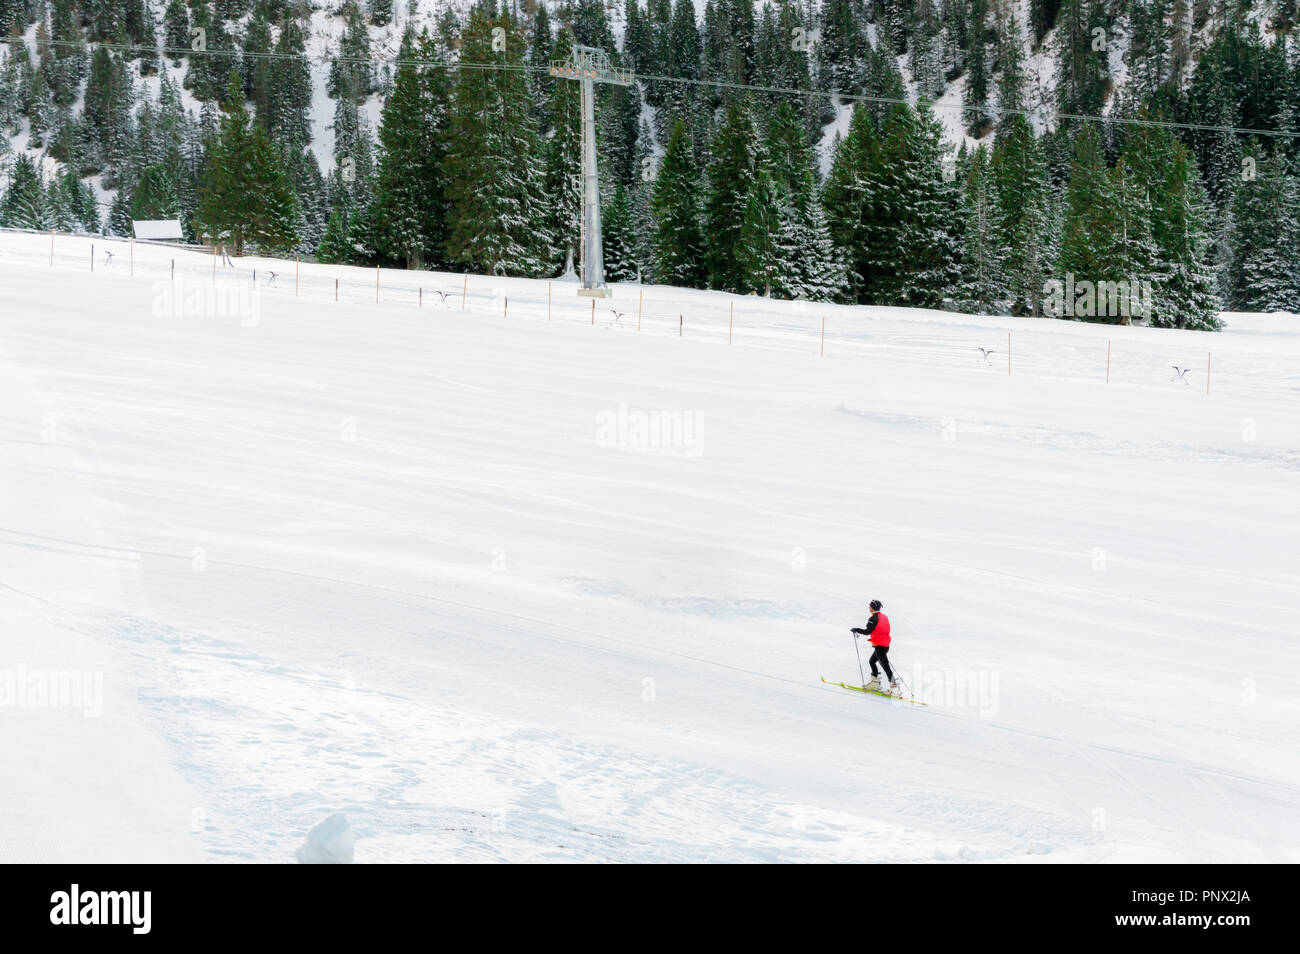 Minimal style winter landscape with ski slope full of snow, surrounded by snowy fir trees, and a single skier, in Ehrwald, Austria. Stock Photo